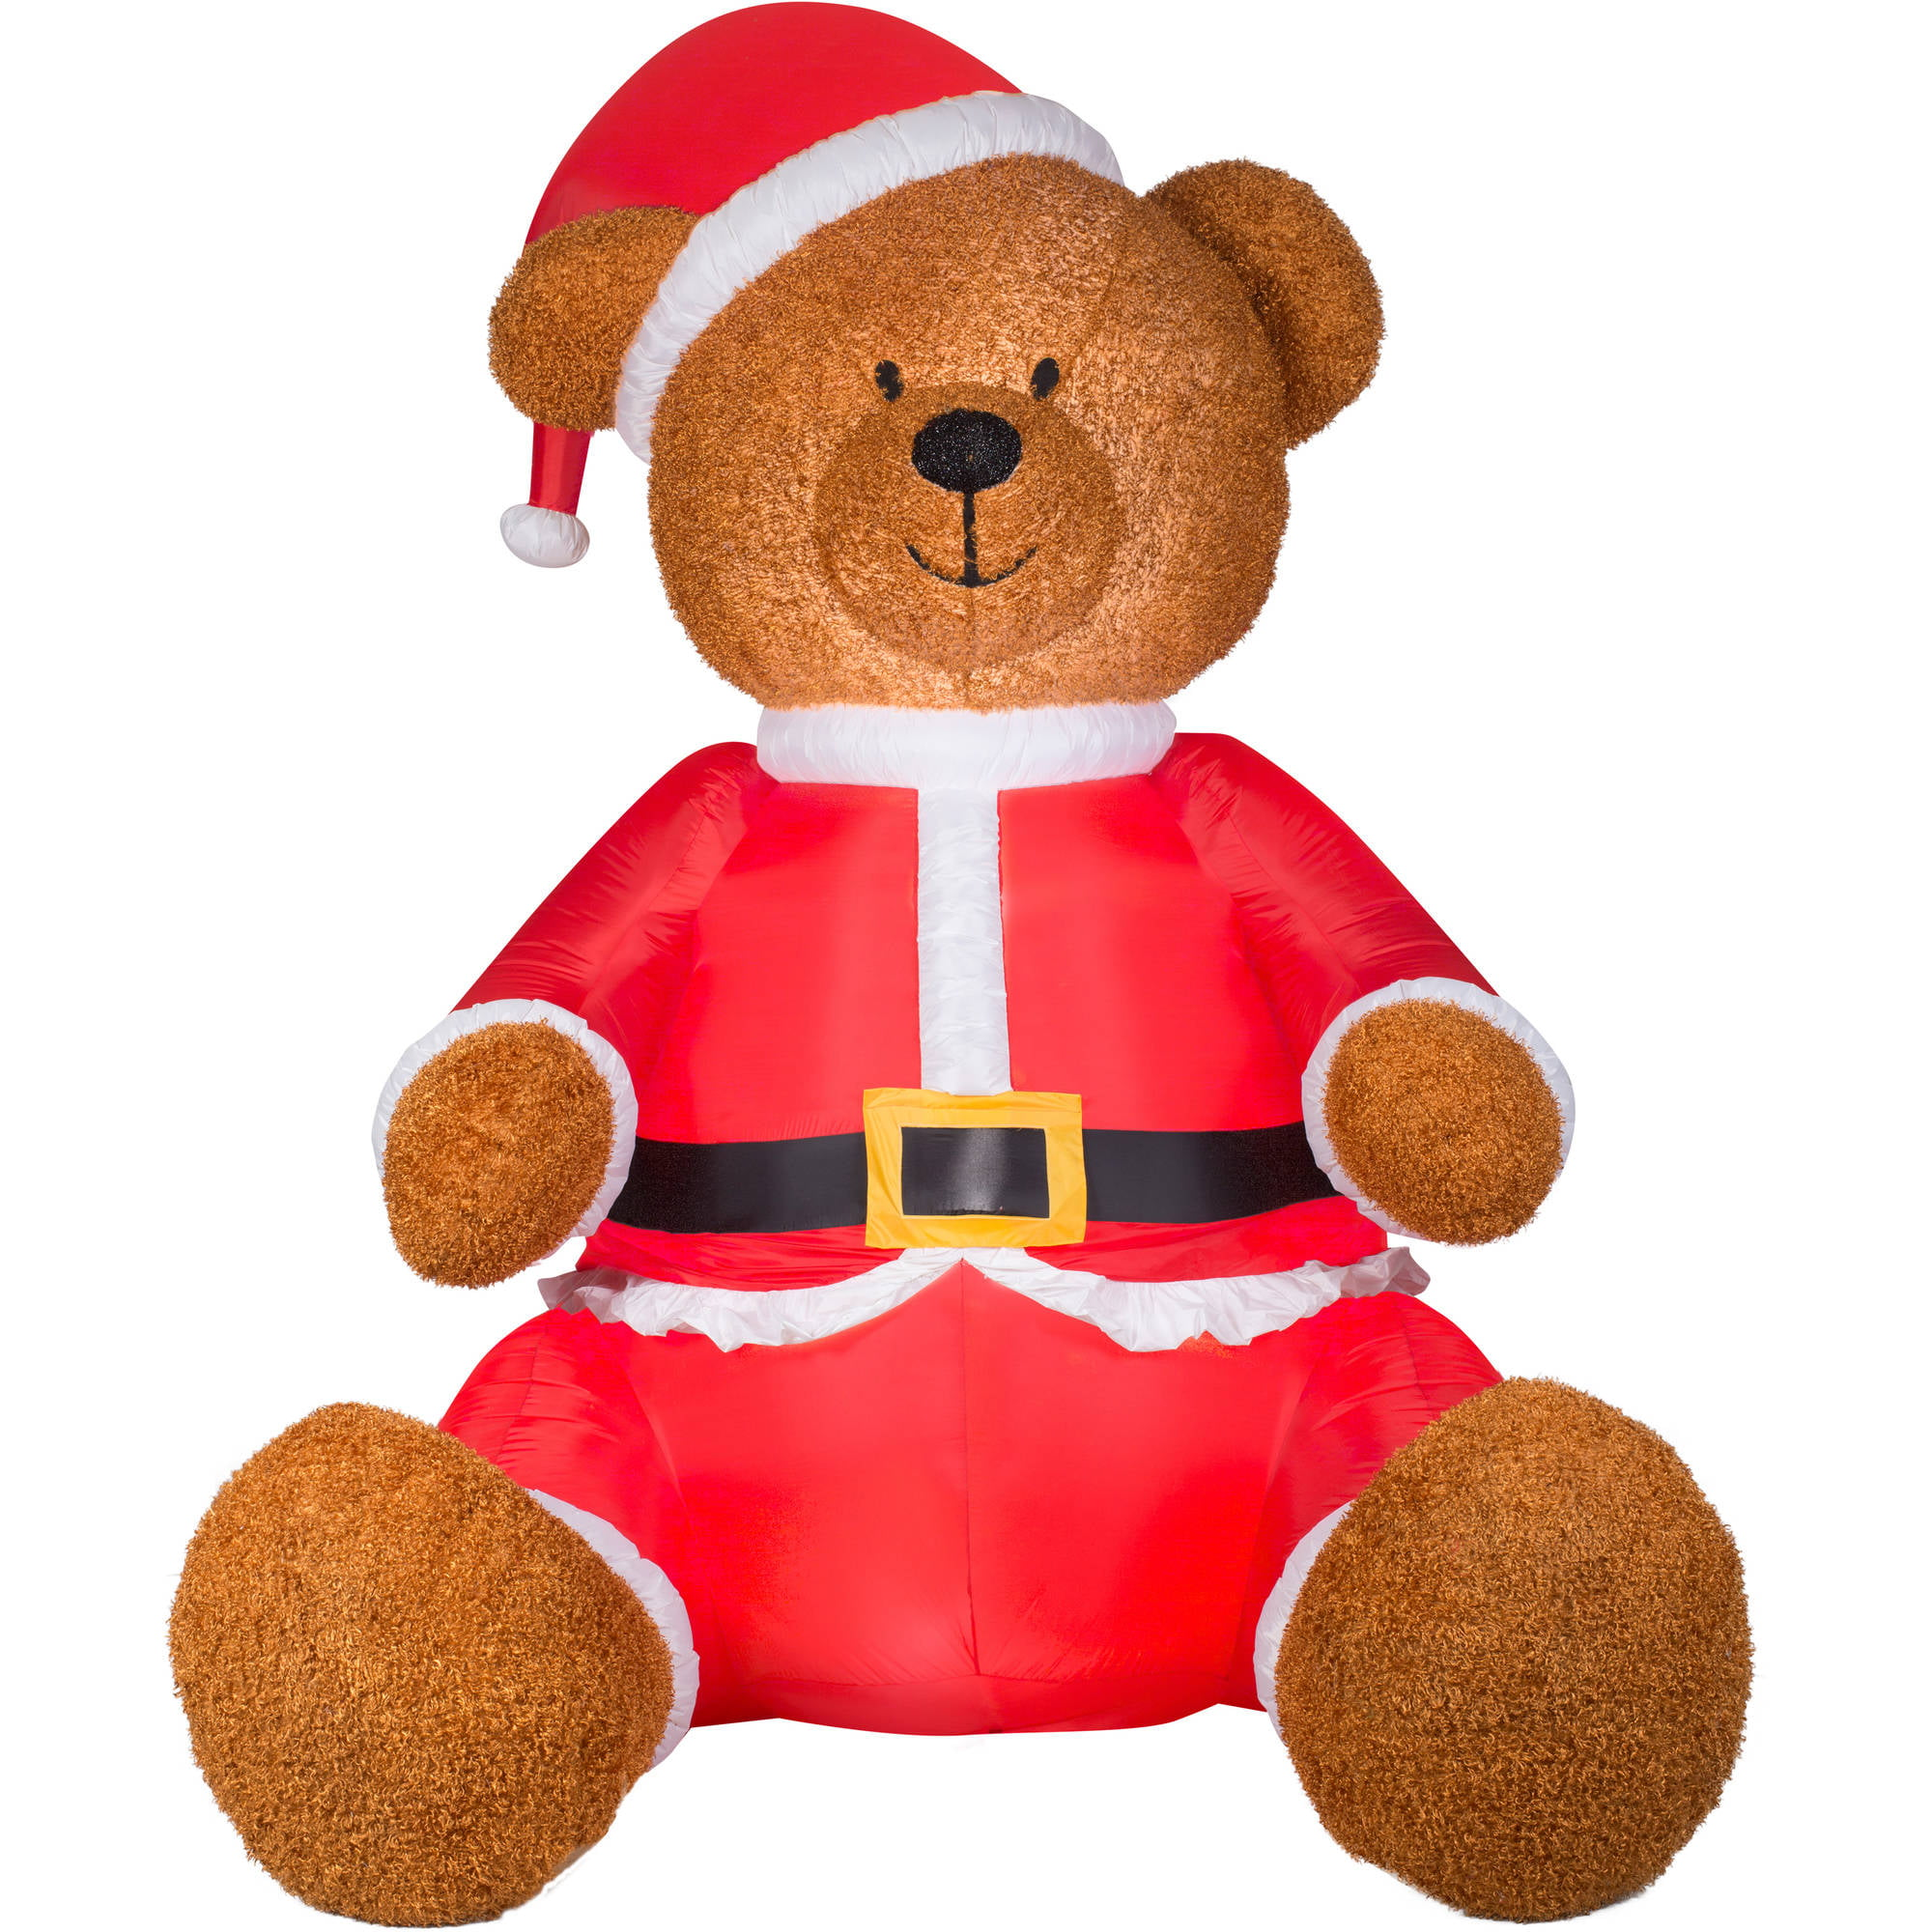 Gemmy Airblown Christmas Inflatables 9' Teddy Bear with Santa Outfit - Walmart.com